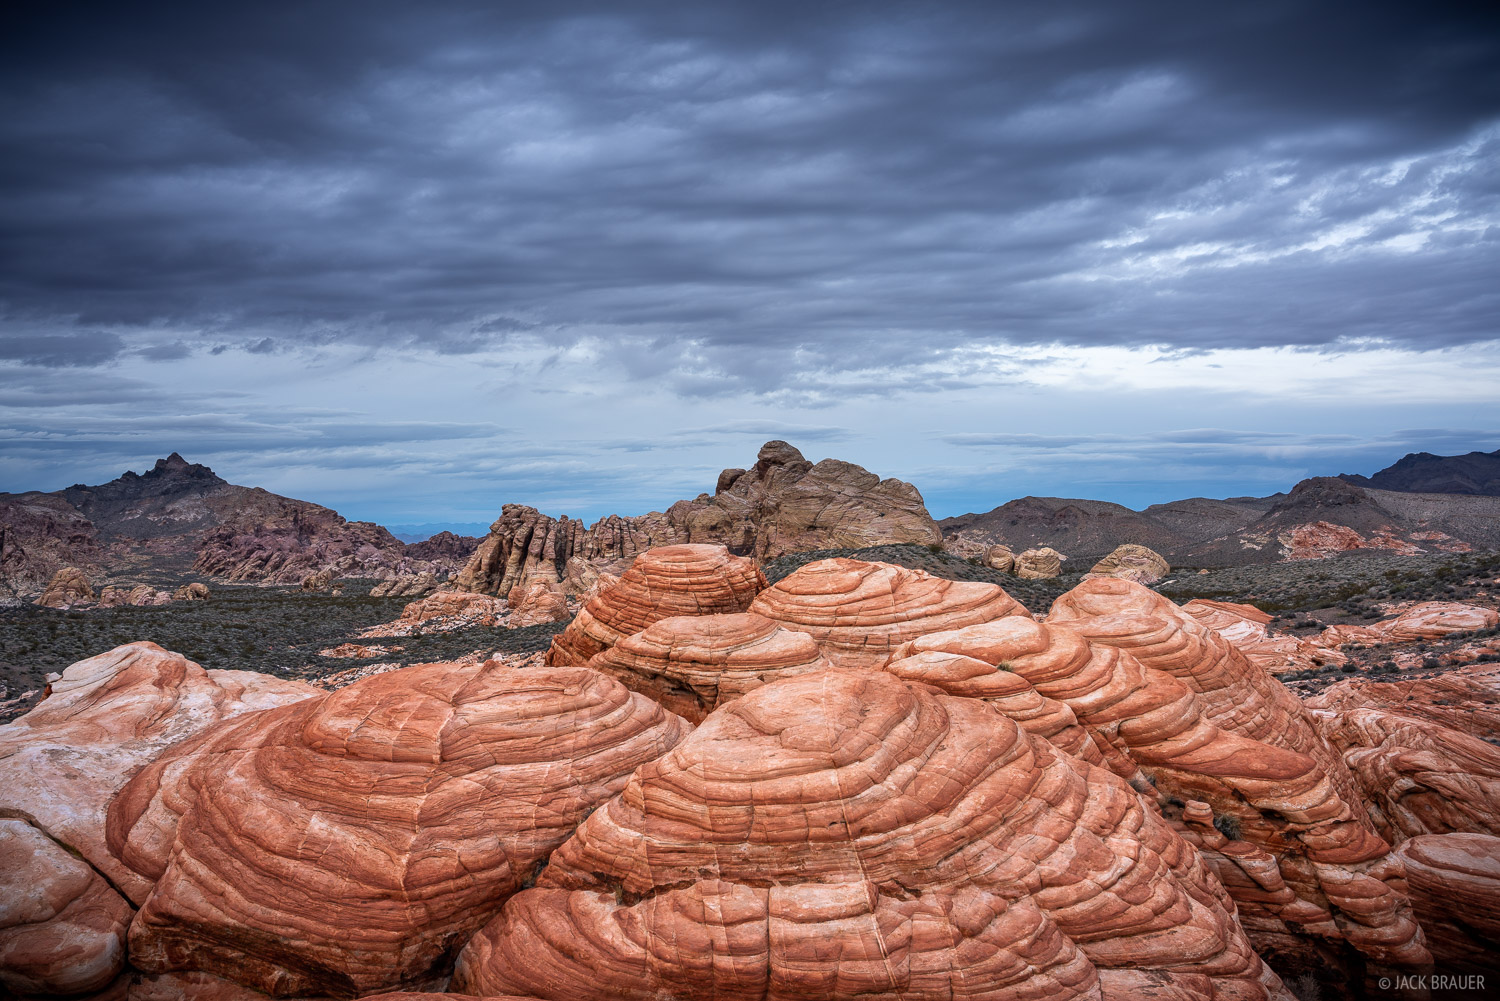 Stormy weather rolling in over sandstone formations.